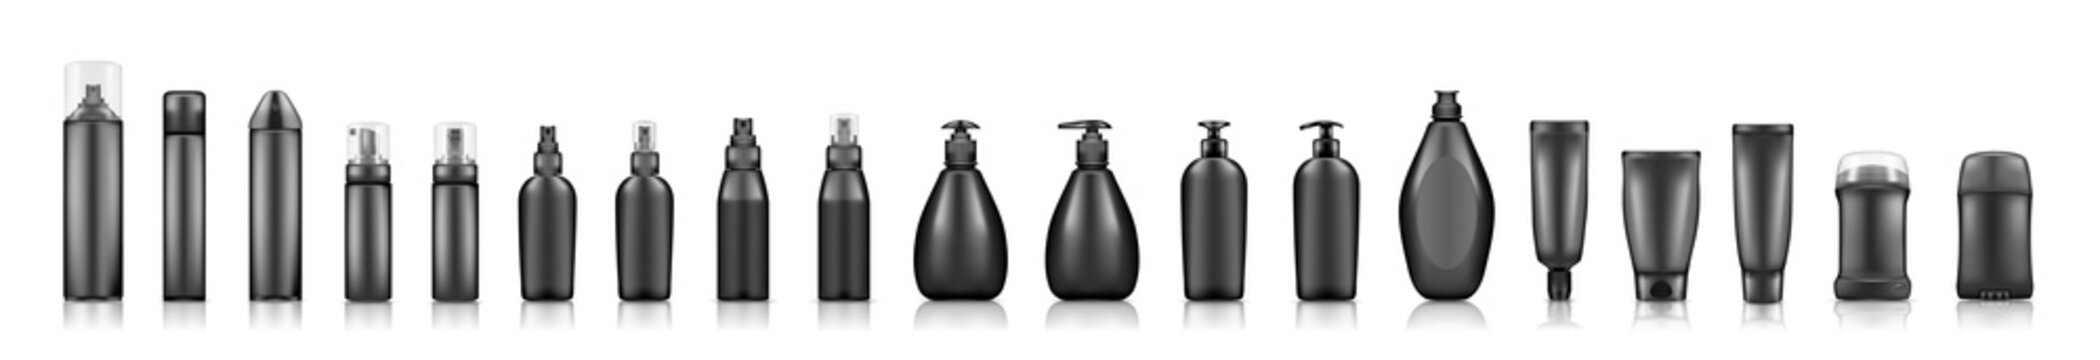 Black cosmetic bottles mockups on white background: soap, shampoo, lotion, deodorant, hairspray. Plastic package design. Blank cosmetic, hygiene and skin care template. Set of 3d vector illustrations